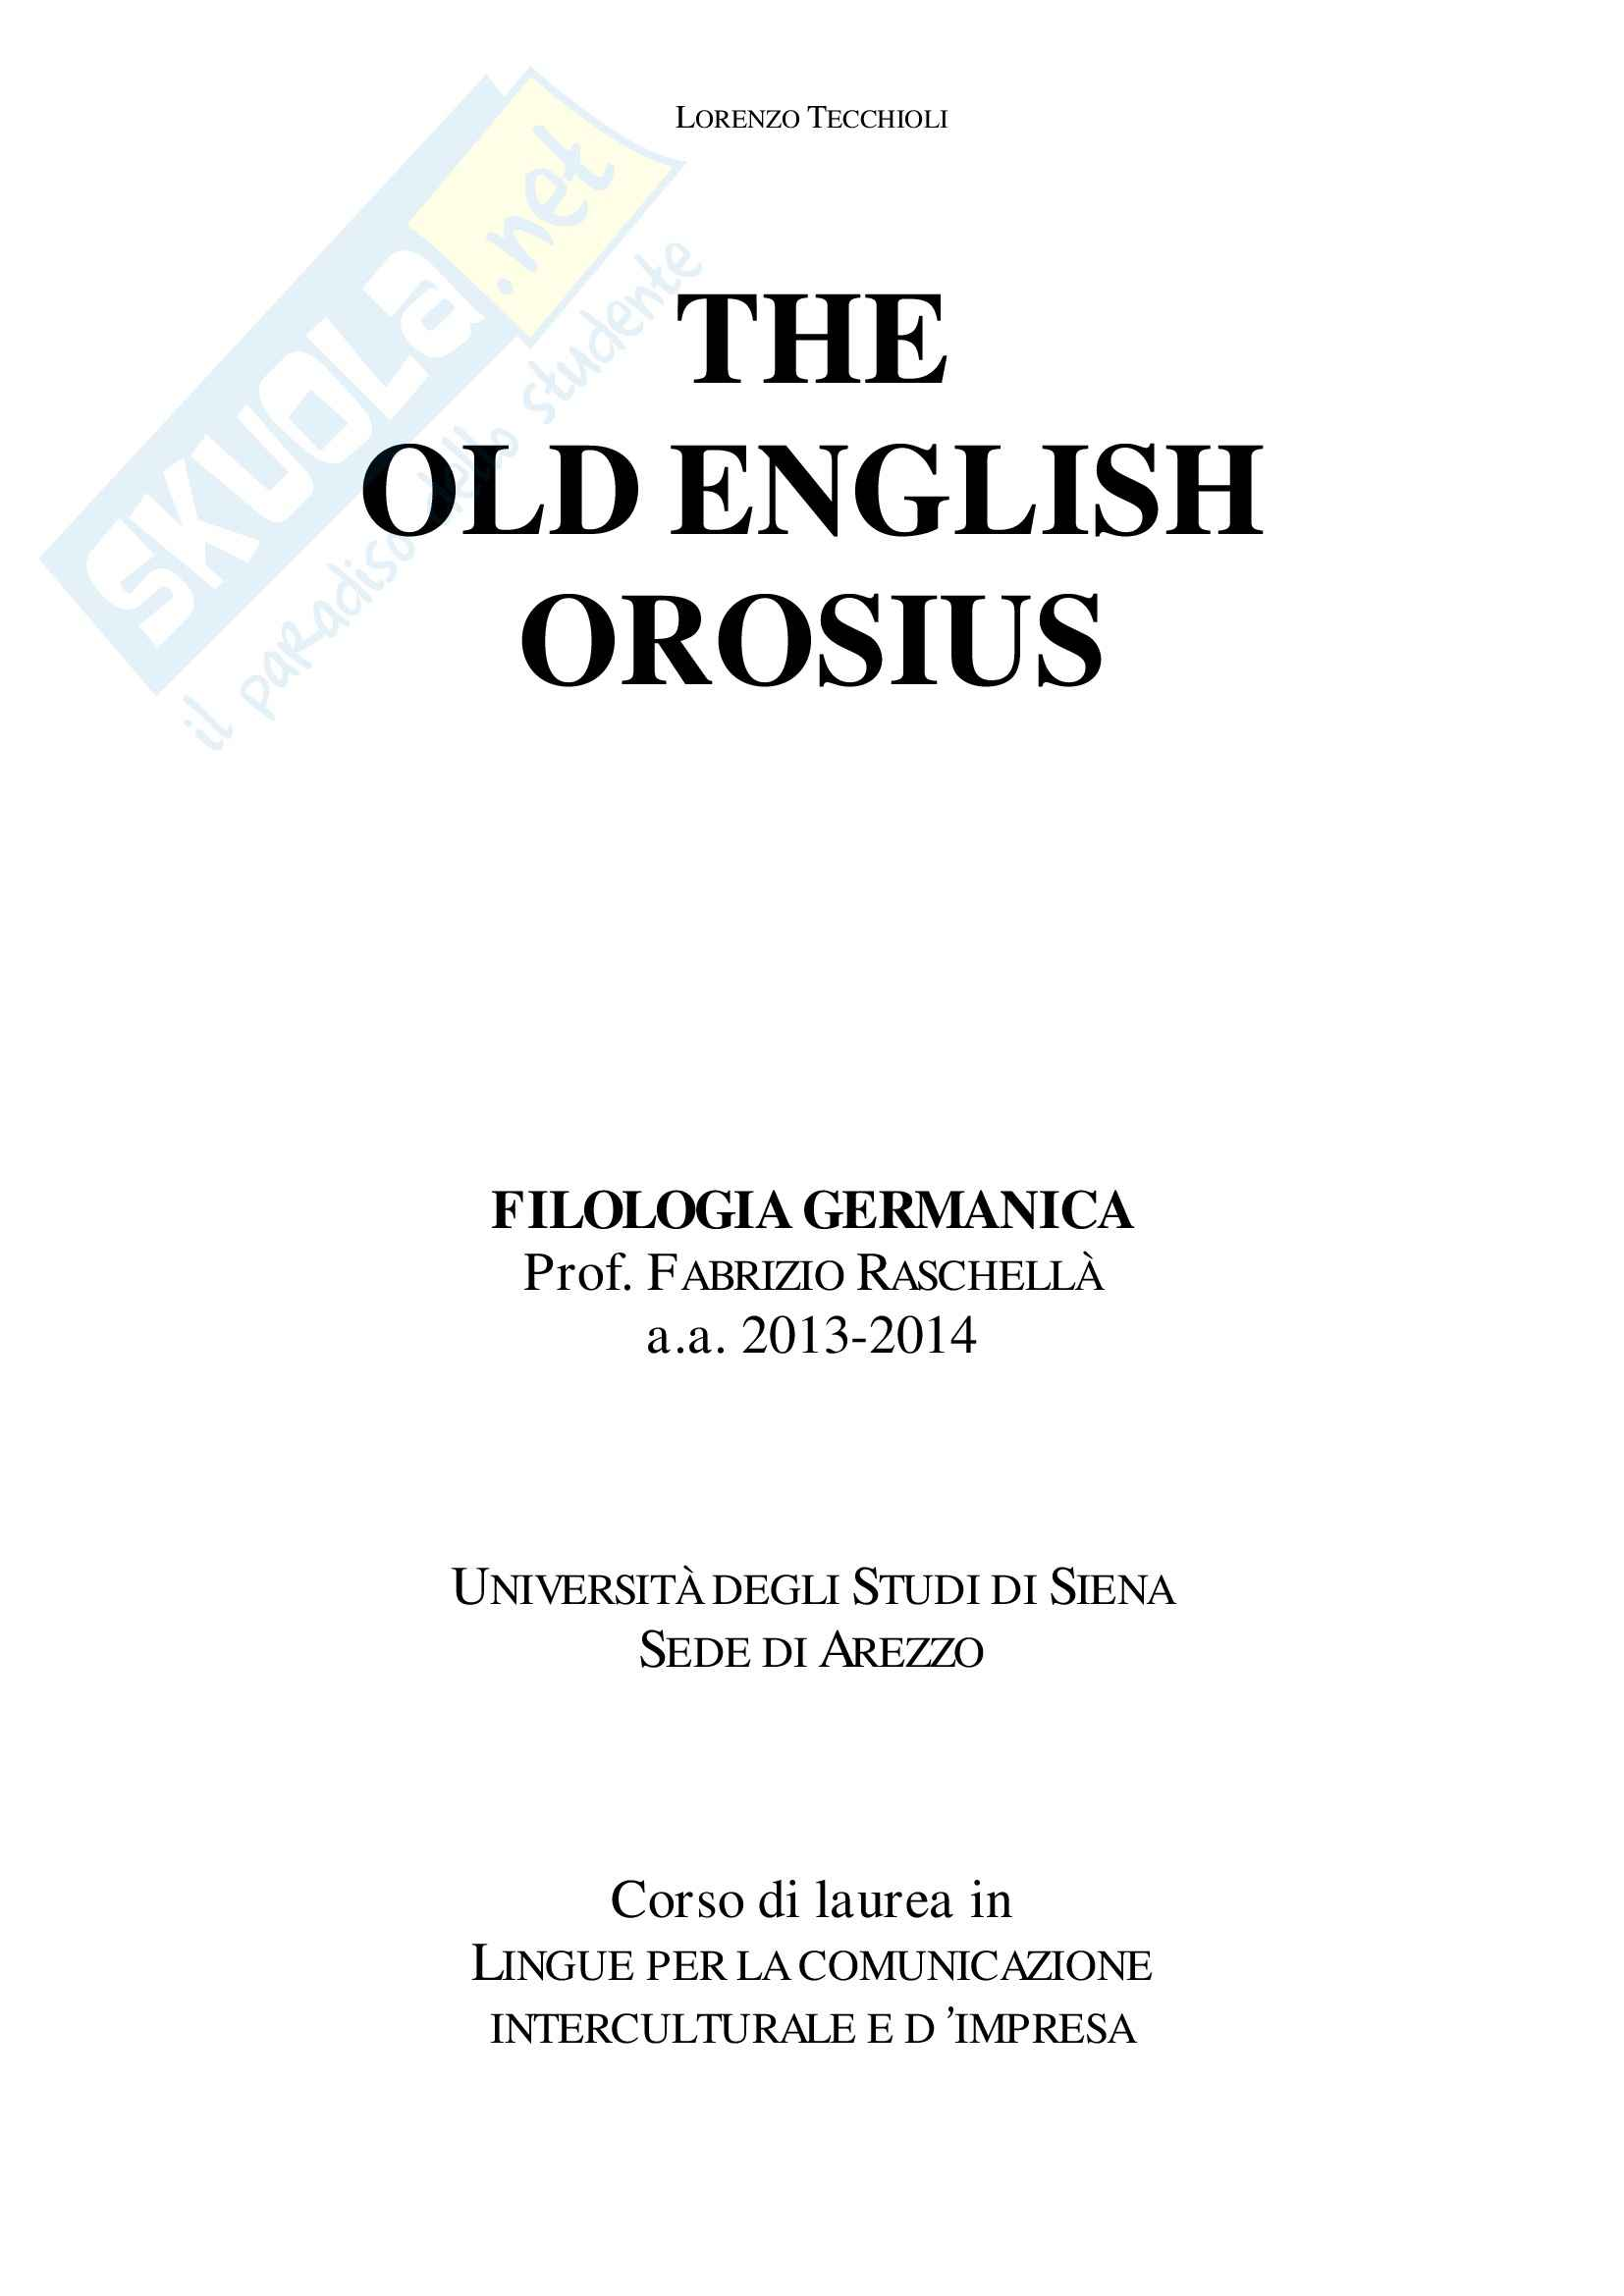 The Old English Orosius, Filologia germanica